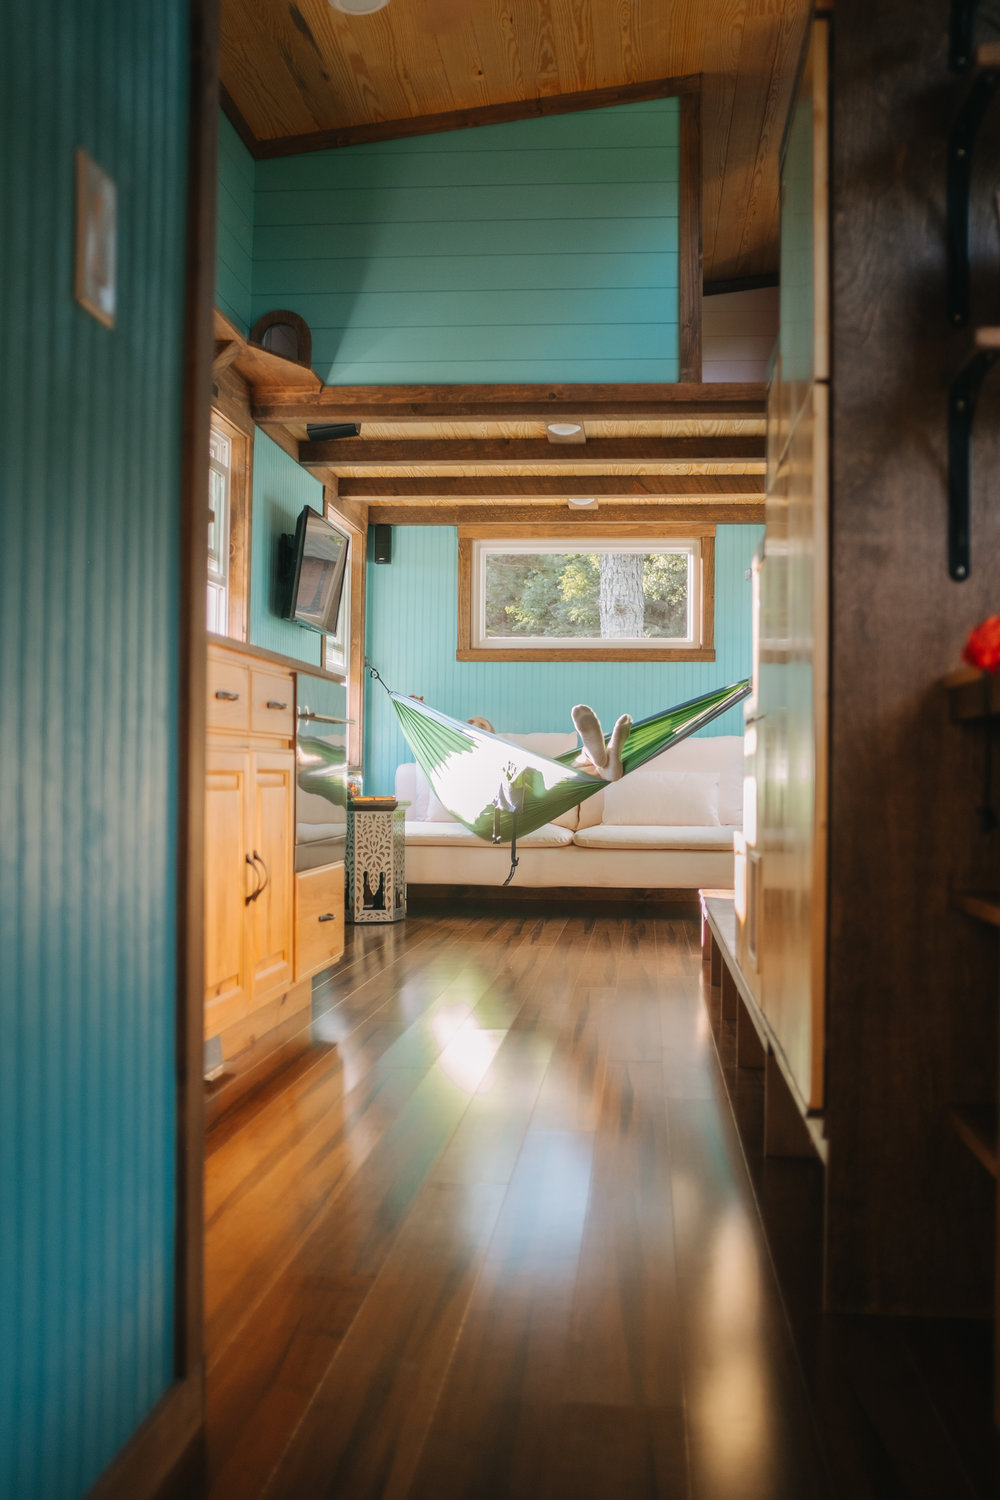 The Big Whimsy by Wind River Tiny Homes - bead board siding, bamboo flooring, IKEA shelving, BOSE surround sound system, custom lily pad spiral stairs, hammock set-up